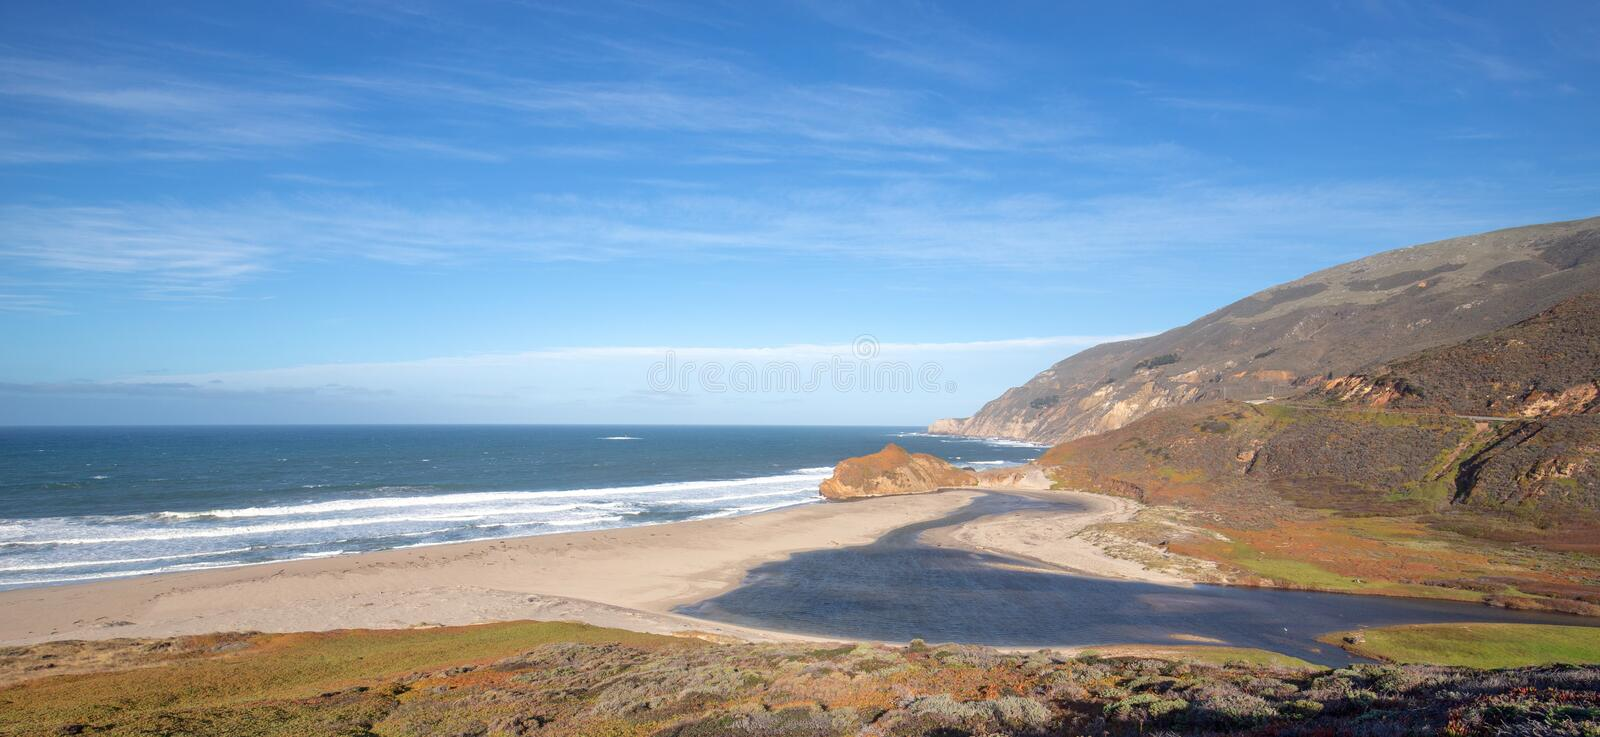 Mouth of the Little Sur river where it meets the Pacific Ocean at Point Sur on the Central California coast - USA. Mouth of the Little Sur river where it meets stock photo